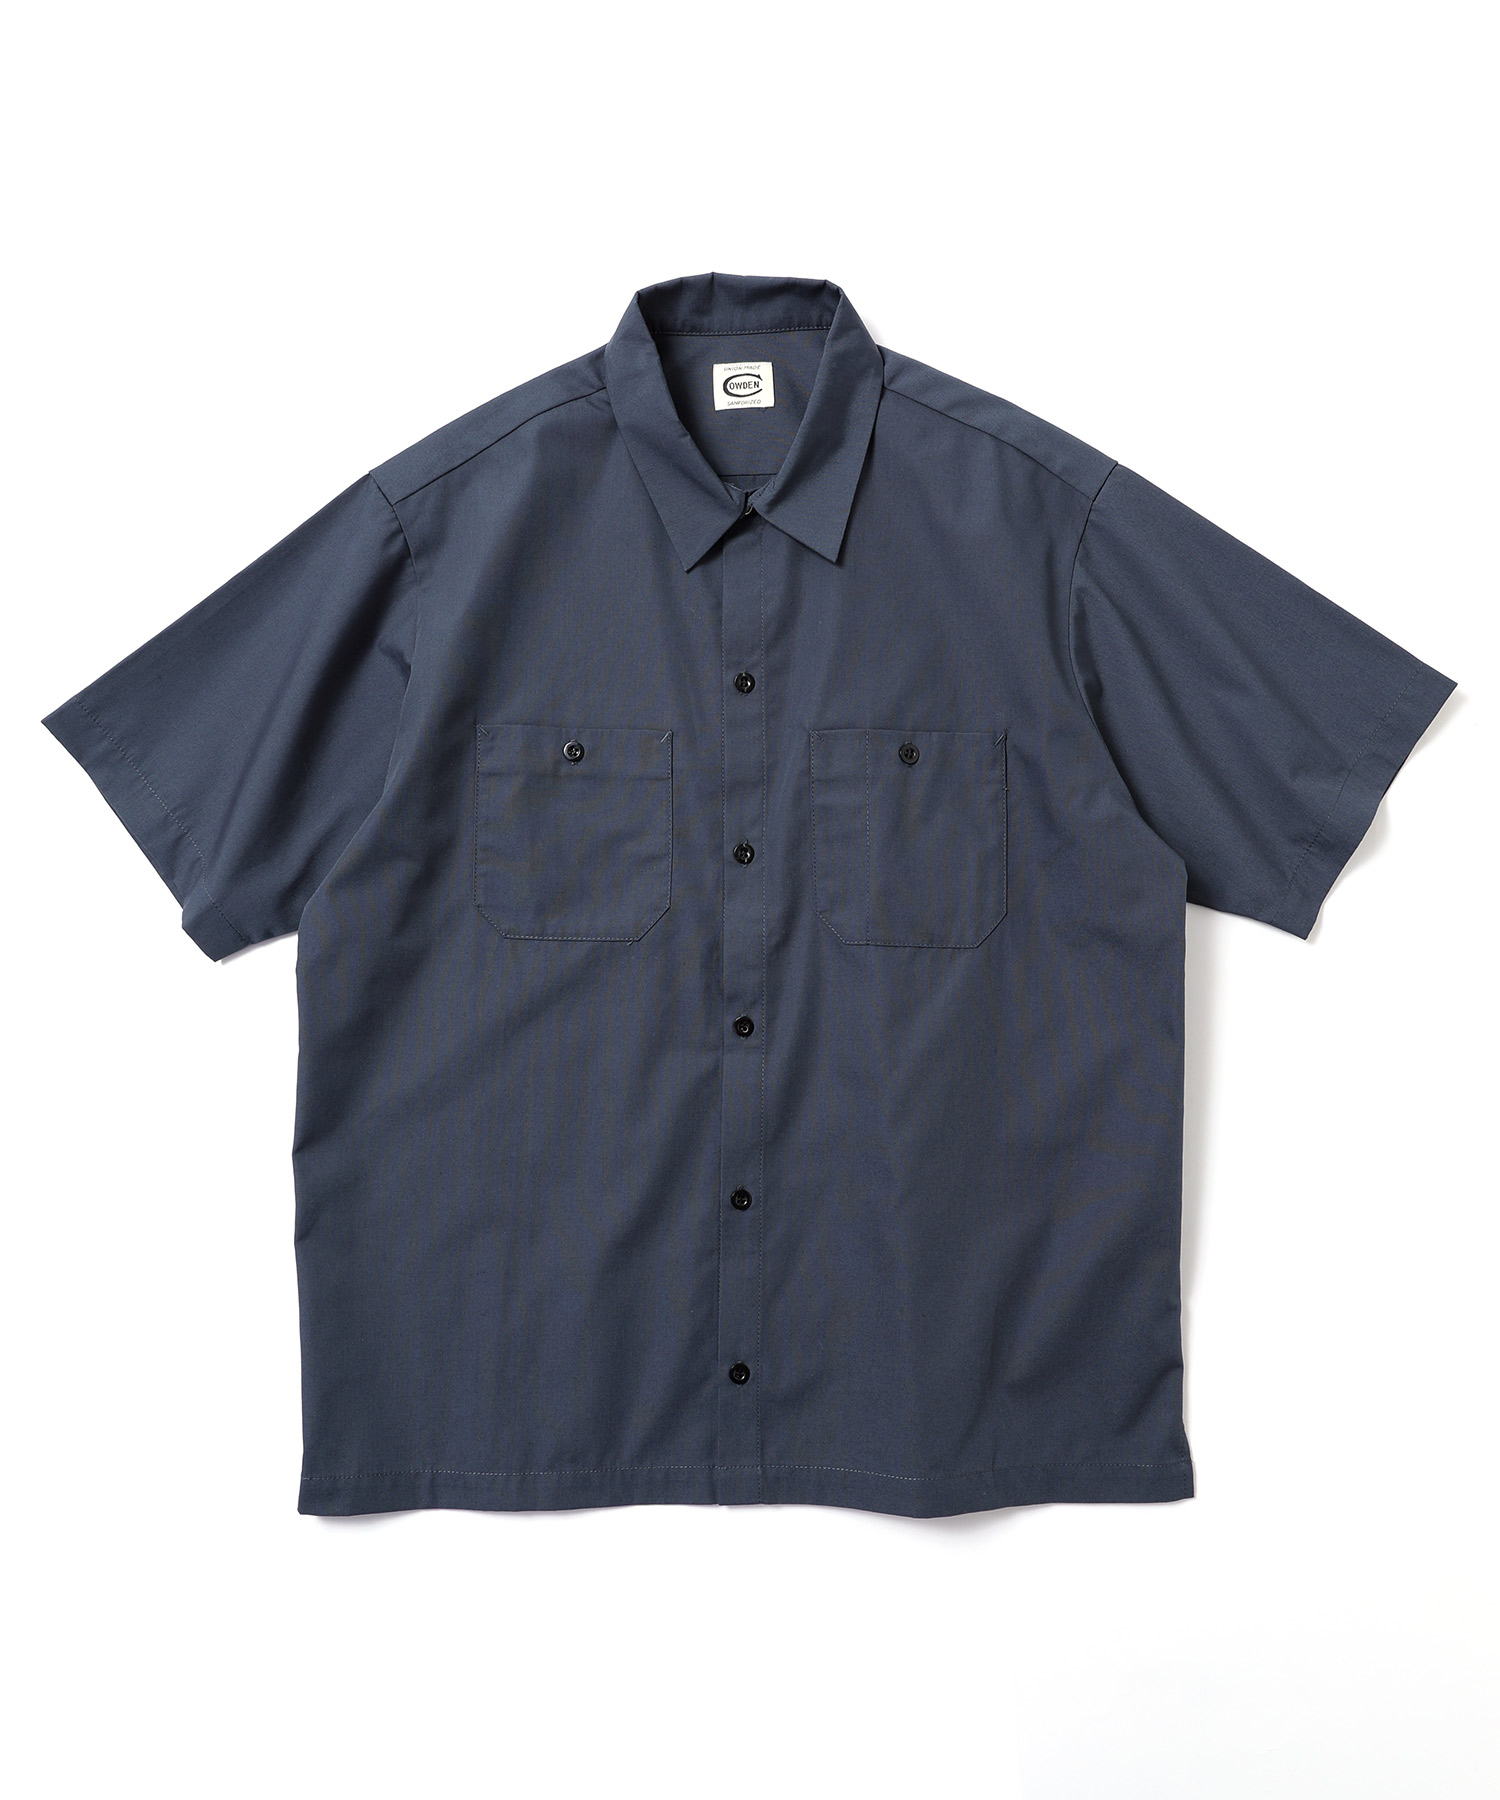 Work Short Sleeve Shirt